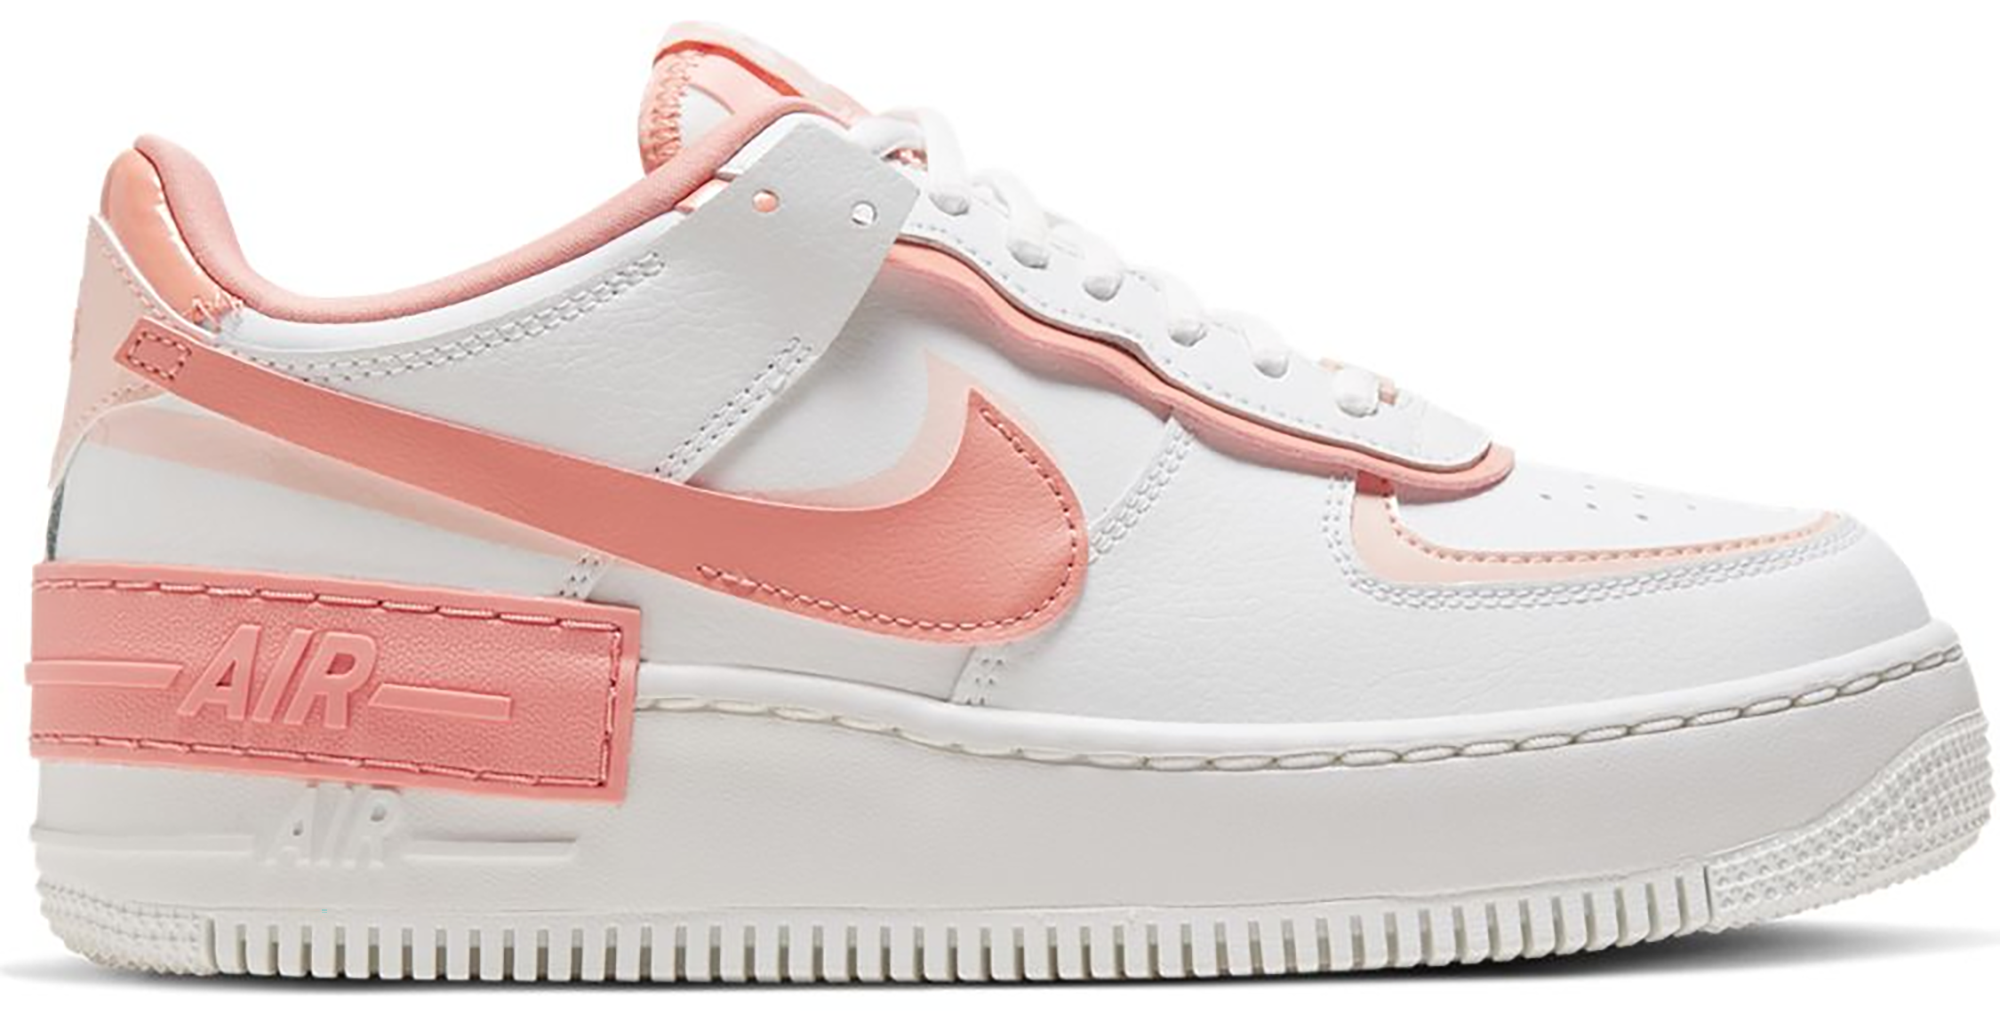 Nike Air Force 1 Shadow White Coral Pink (W) in 2020